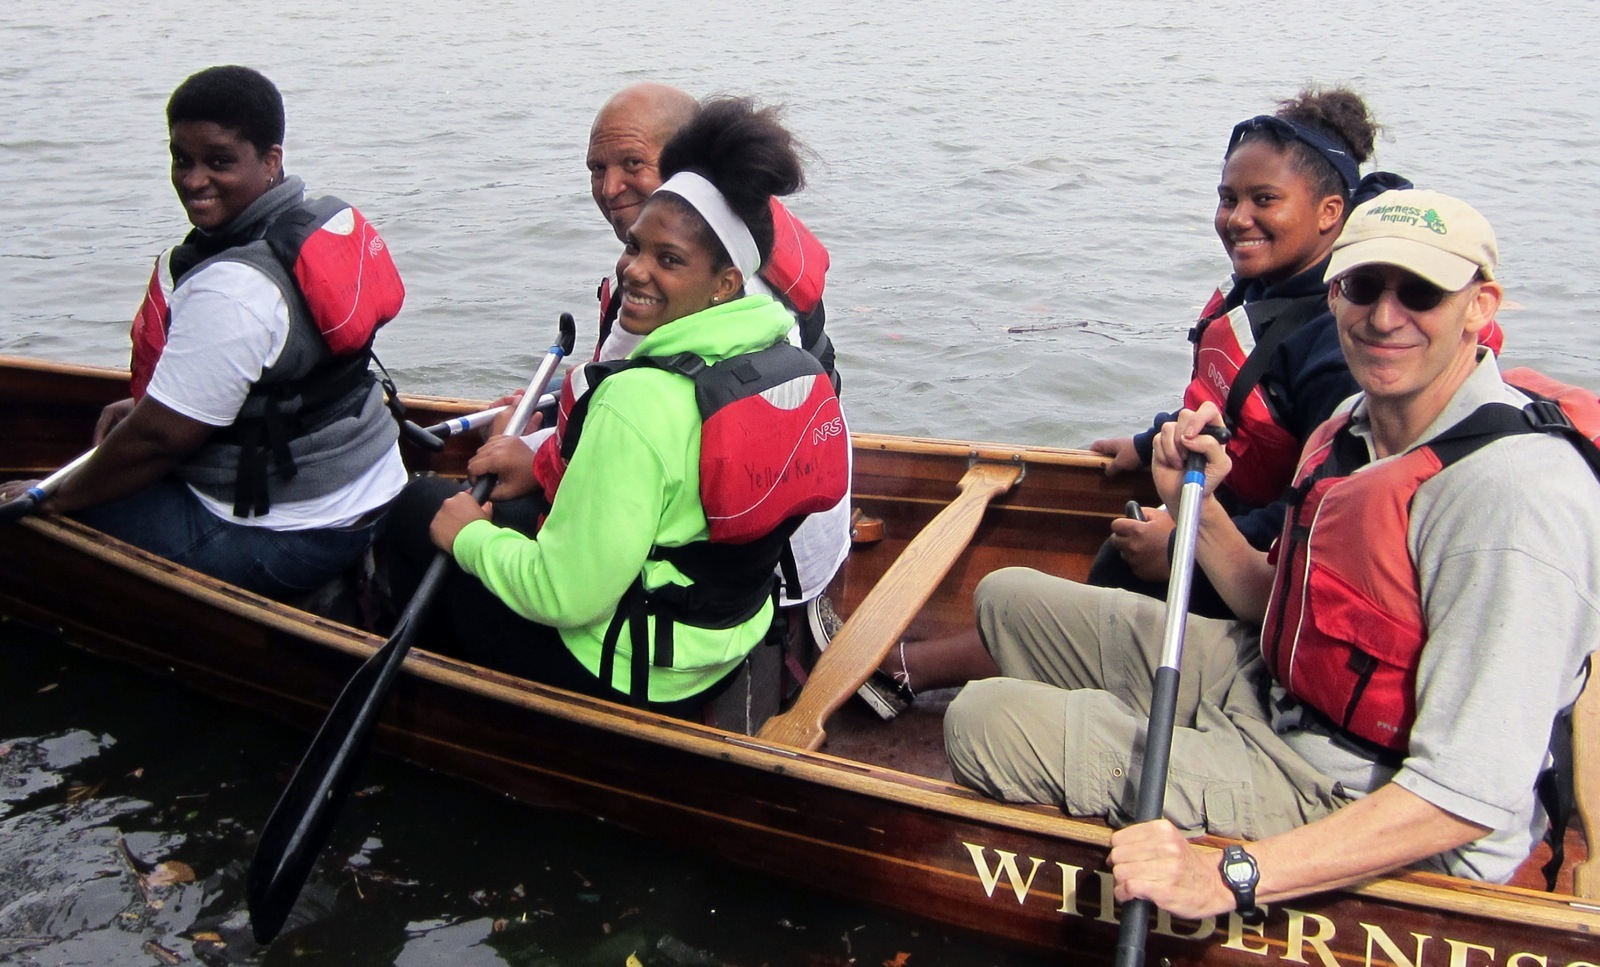 5 participants paddling in the bow of the canoe smile for a photo on the Delaware